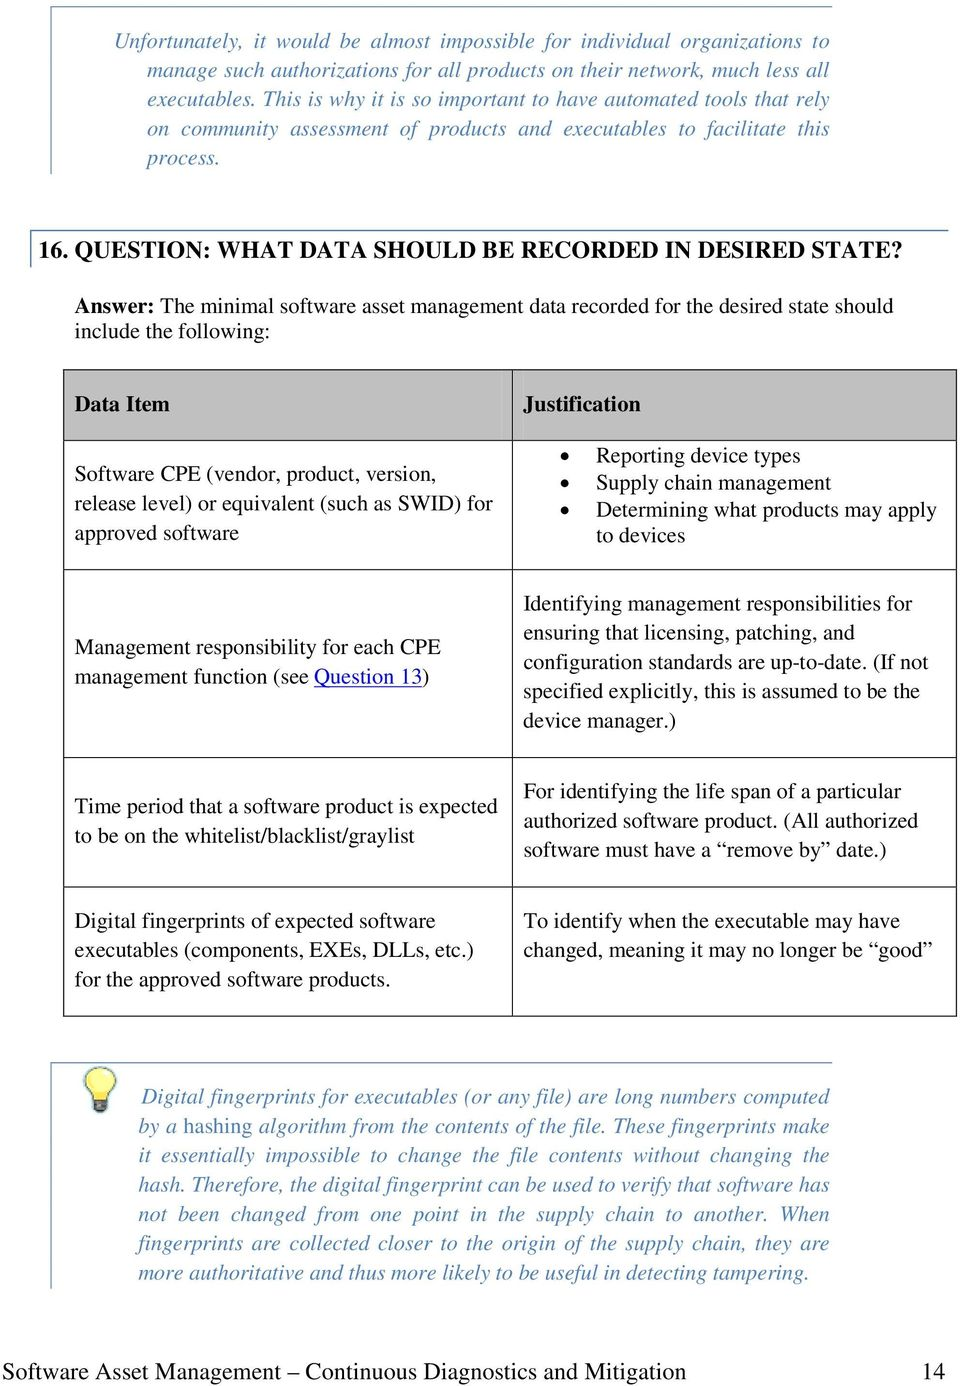 QUESTION: WHAT DATA SHOULD BE RECORDED IN DESIRED STATE?